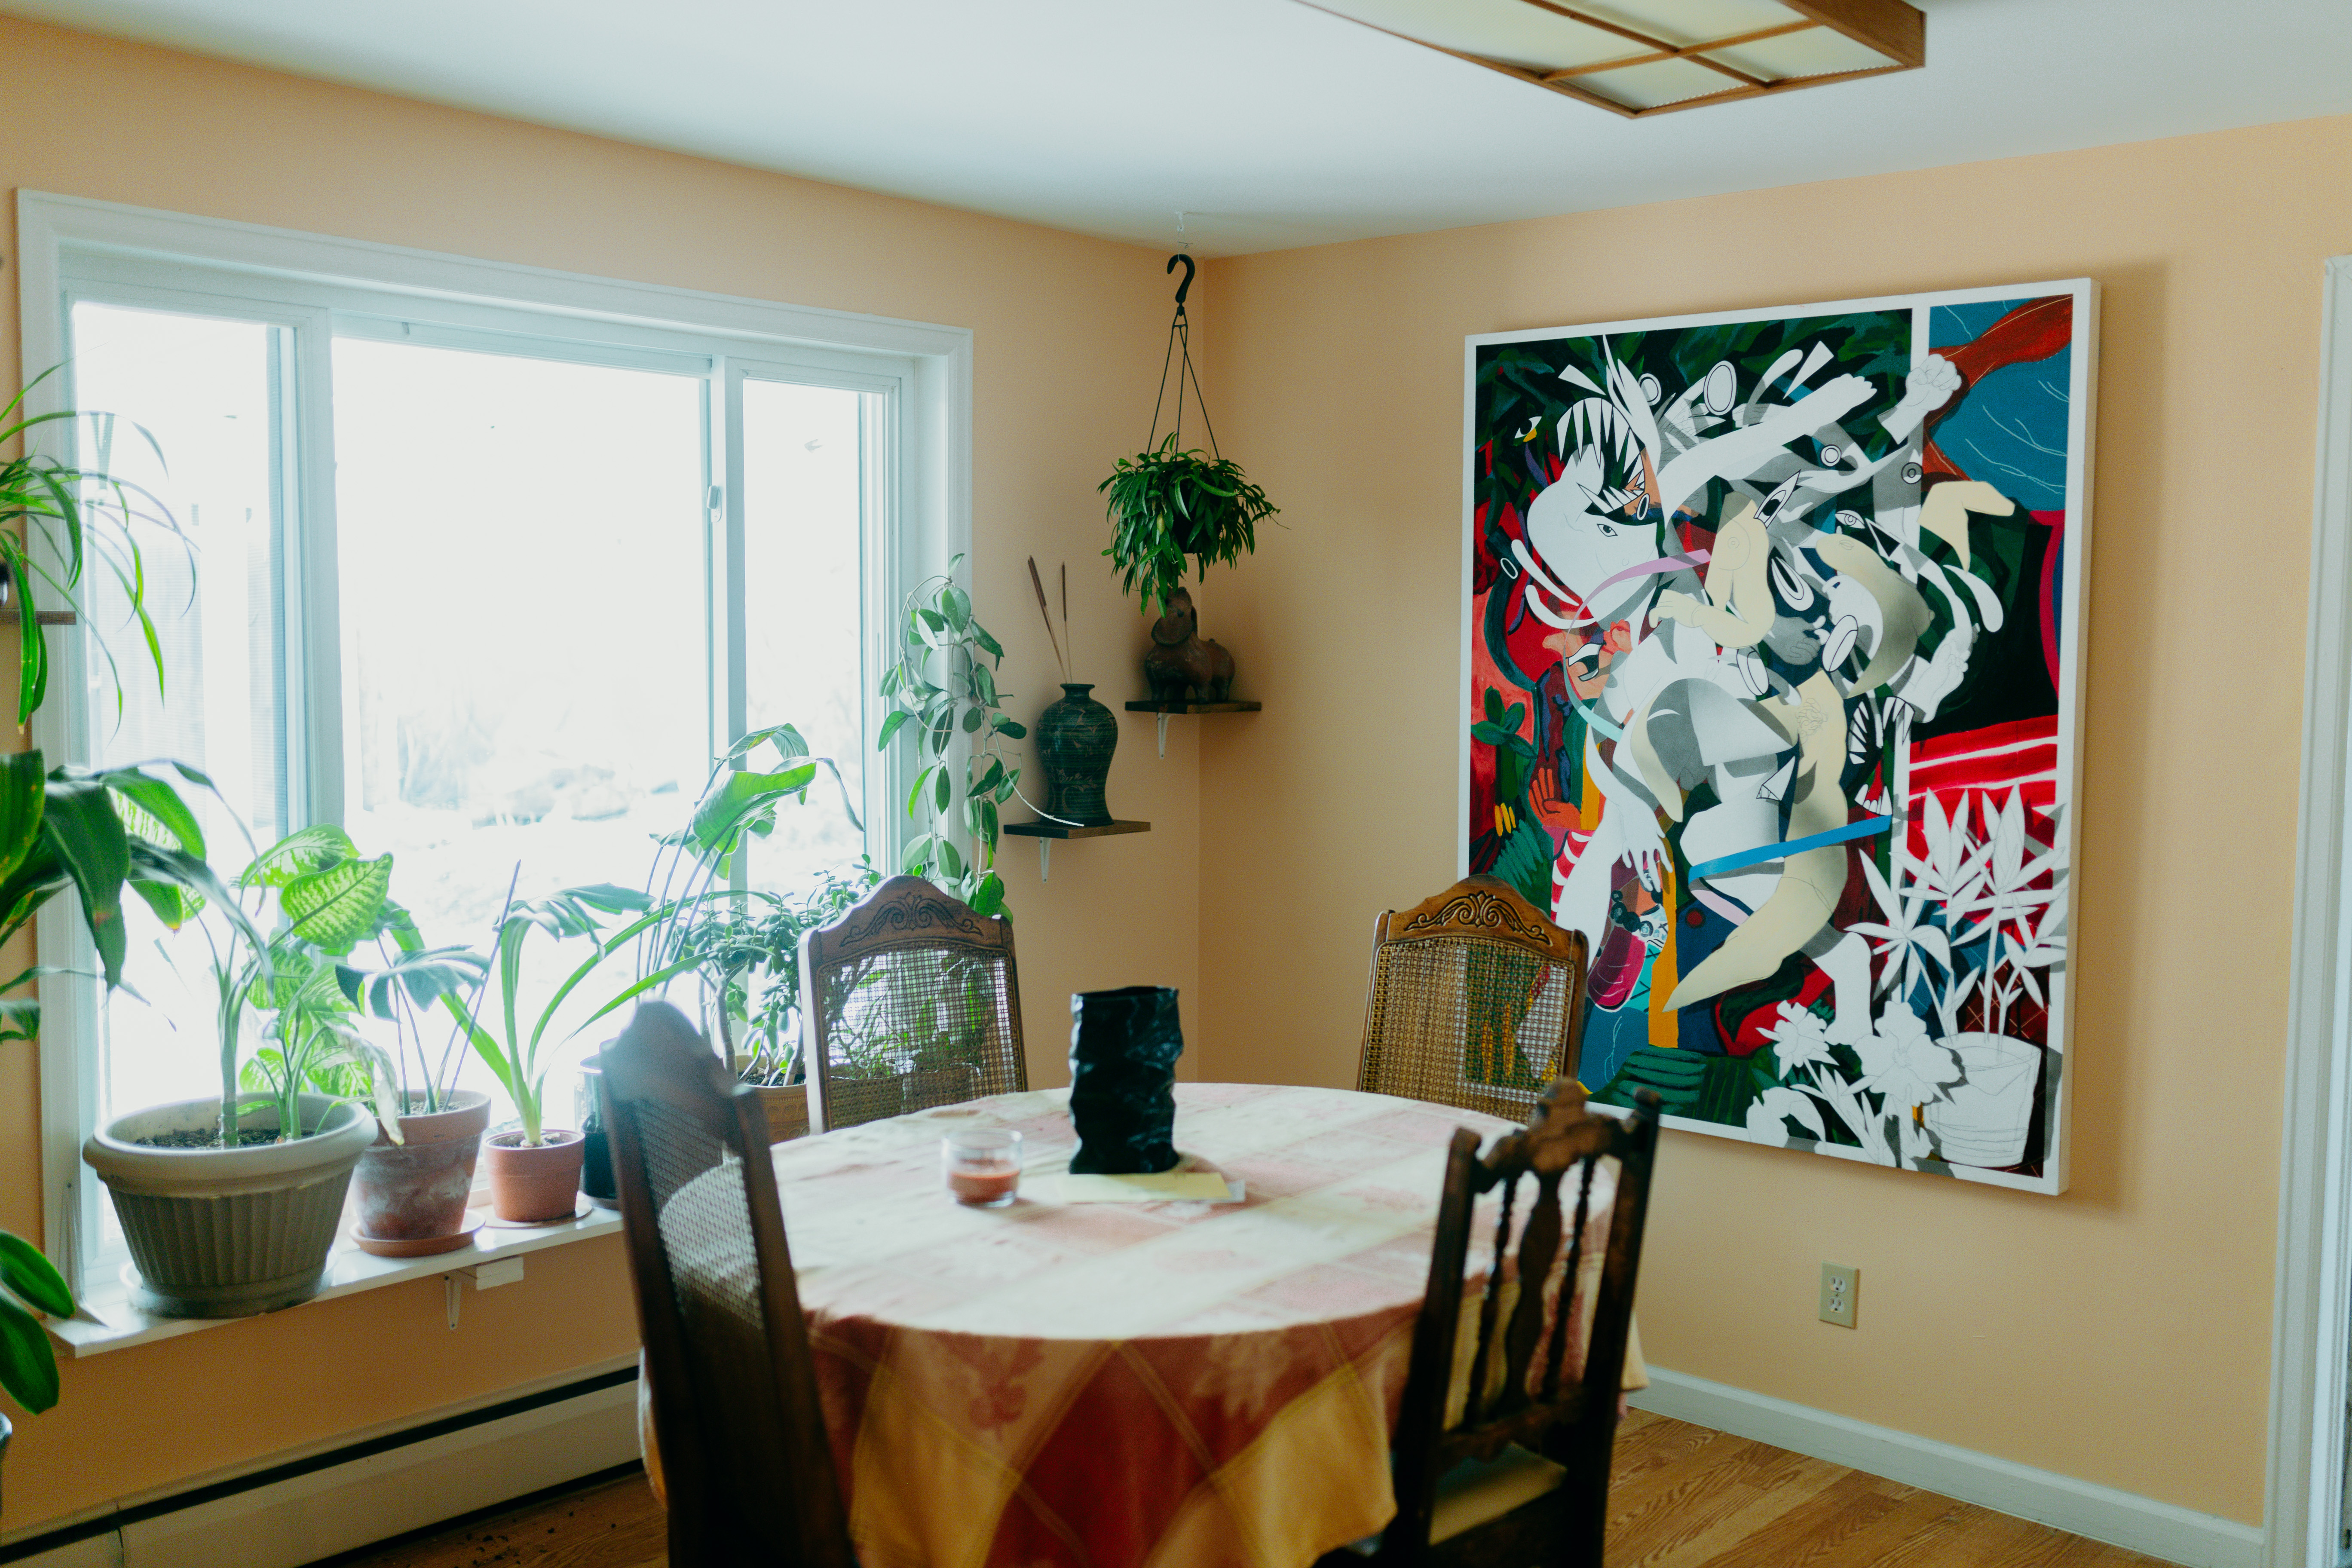 A dining room filled with plants. On the wall is a large abstract painting. A round table with four chairs rests in the center of the room.